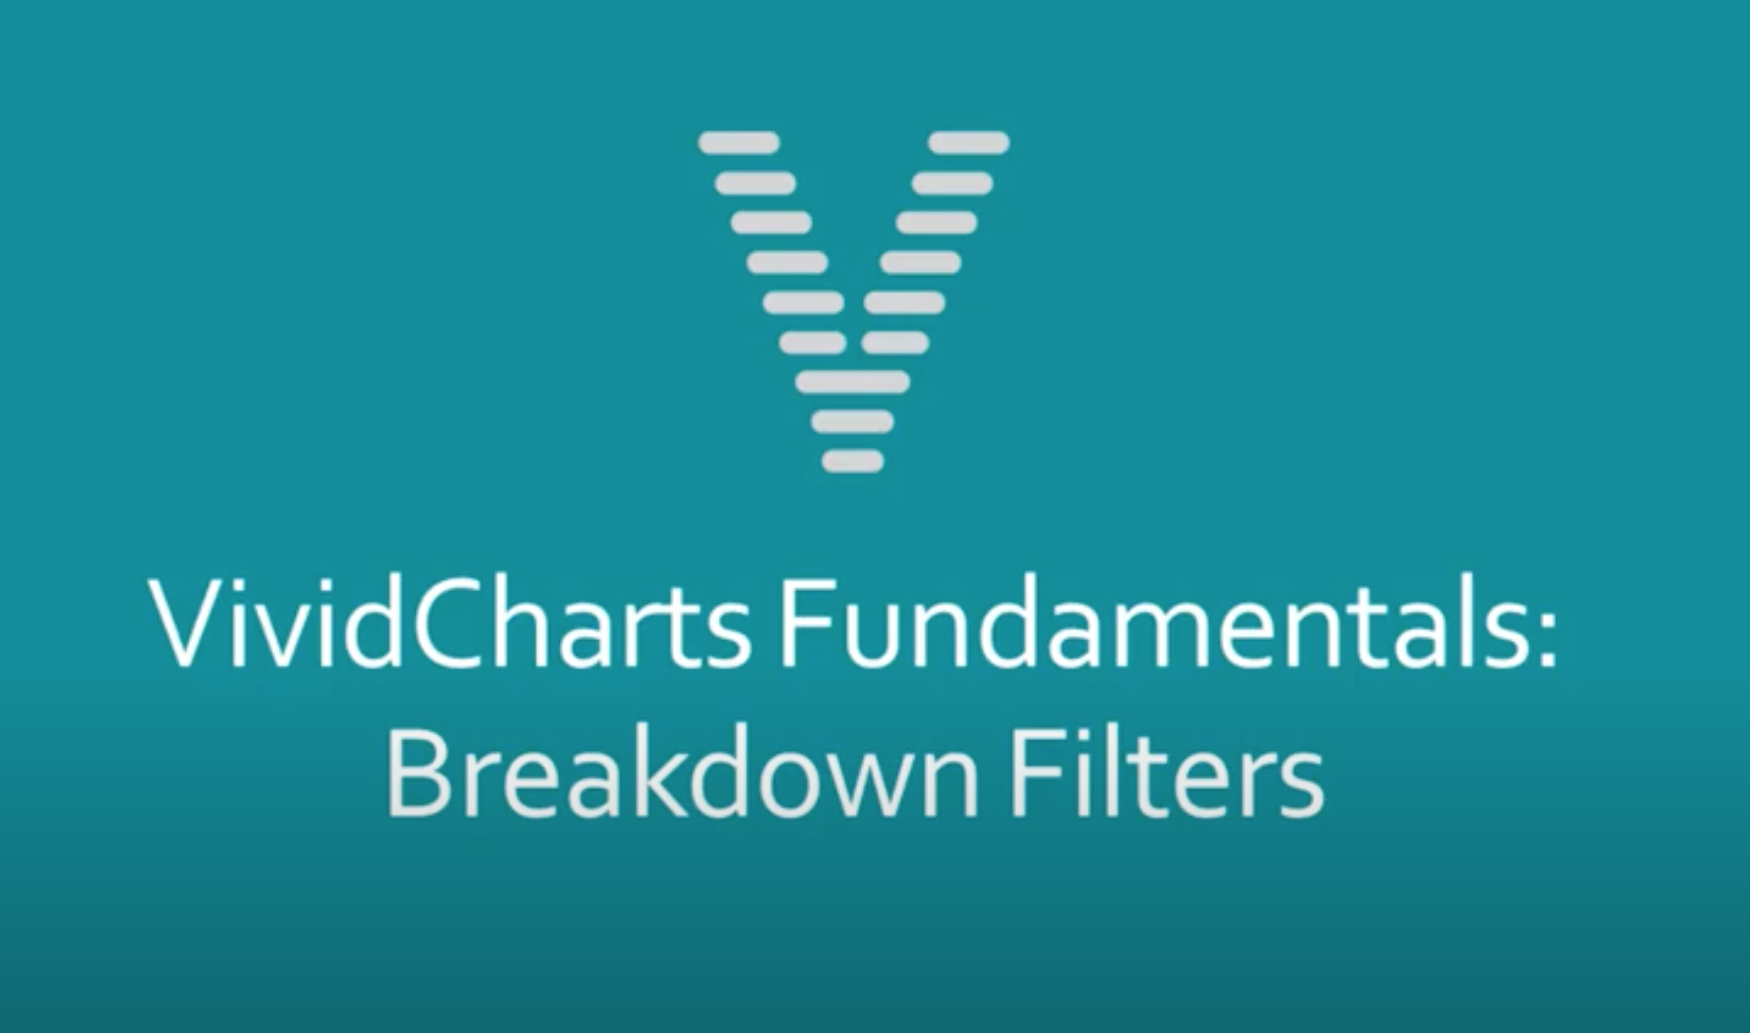 How To Create VividCharts Breakdown Filters